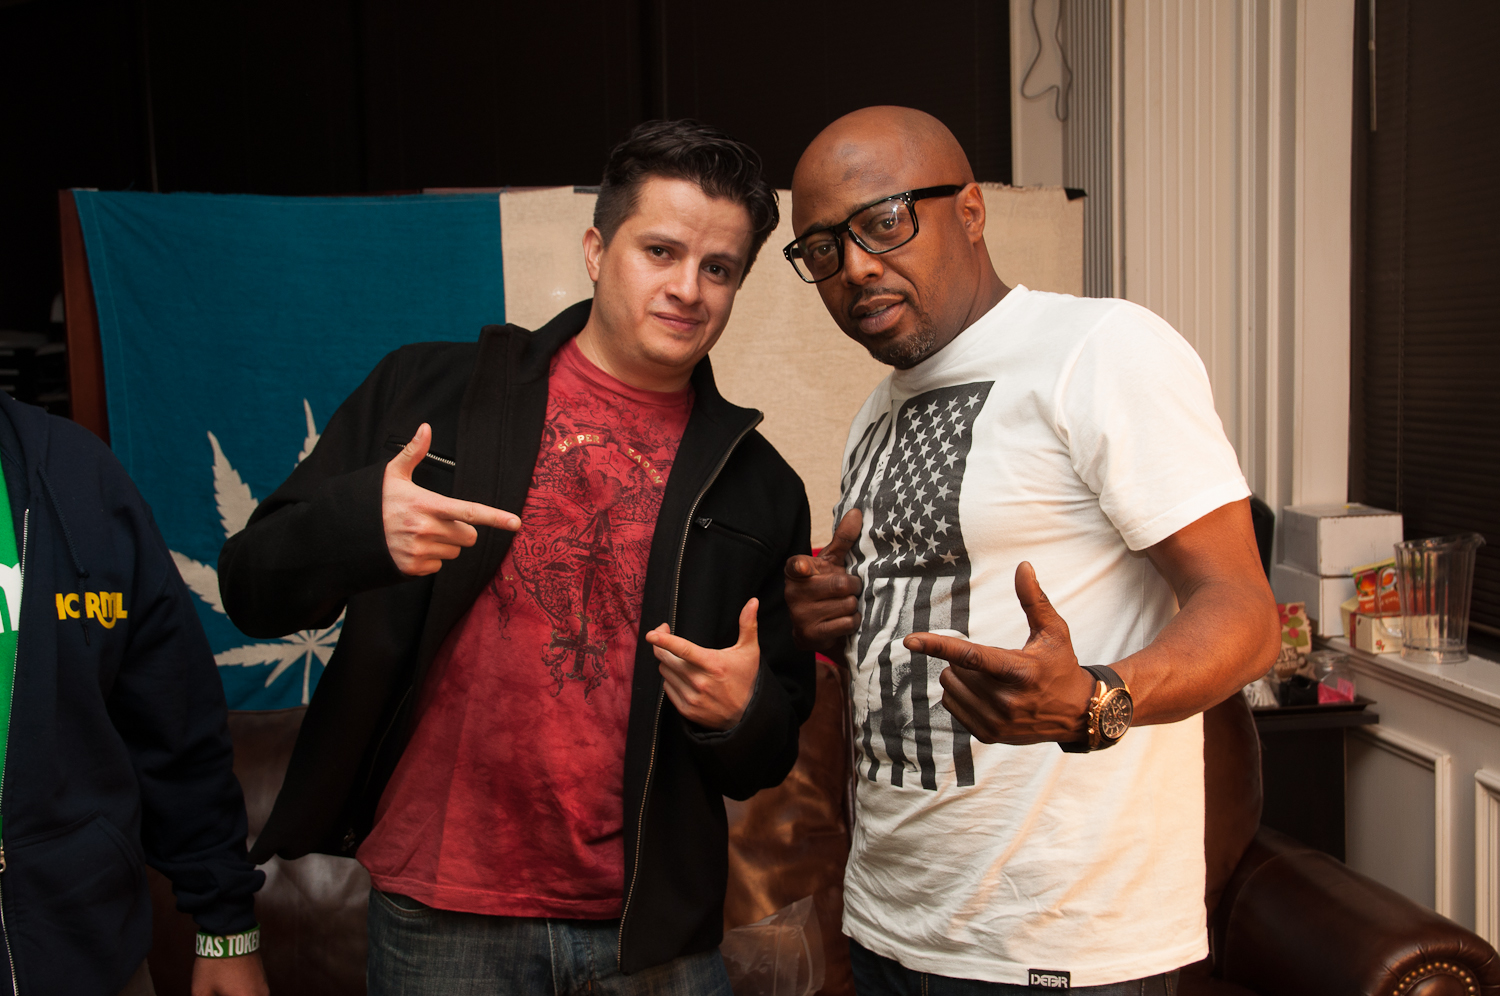 DFW NORML interviews Donnell Rawlings at the Addison Improv Comedy Club